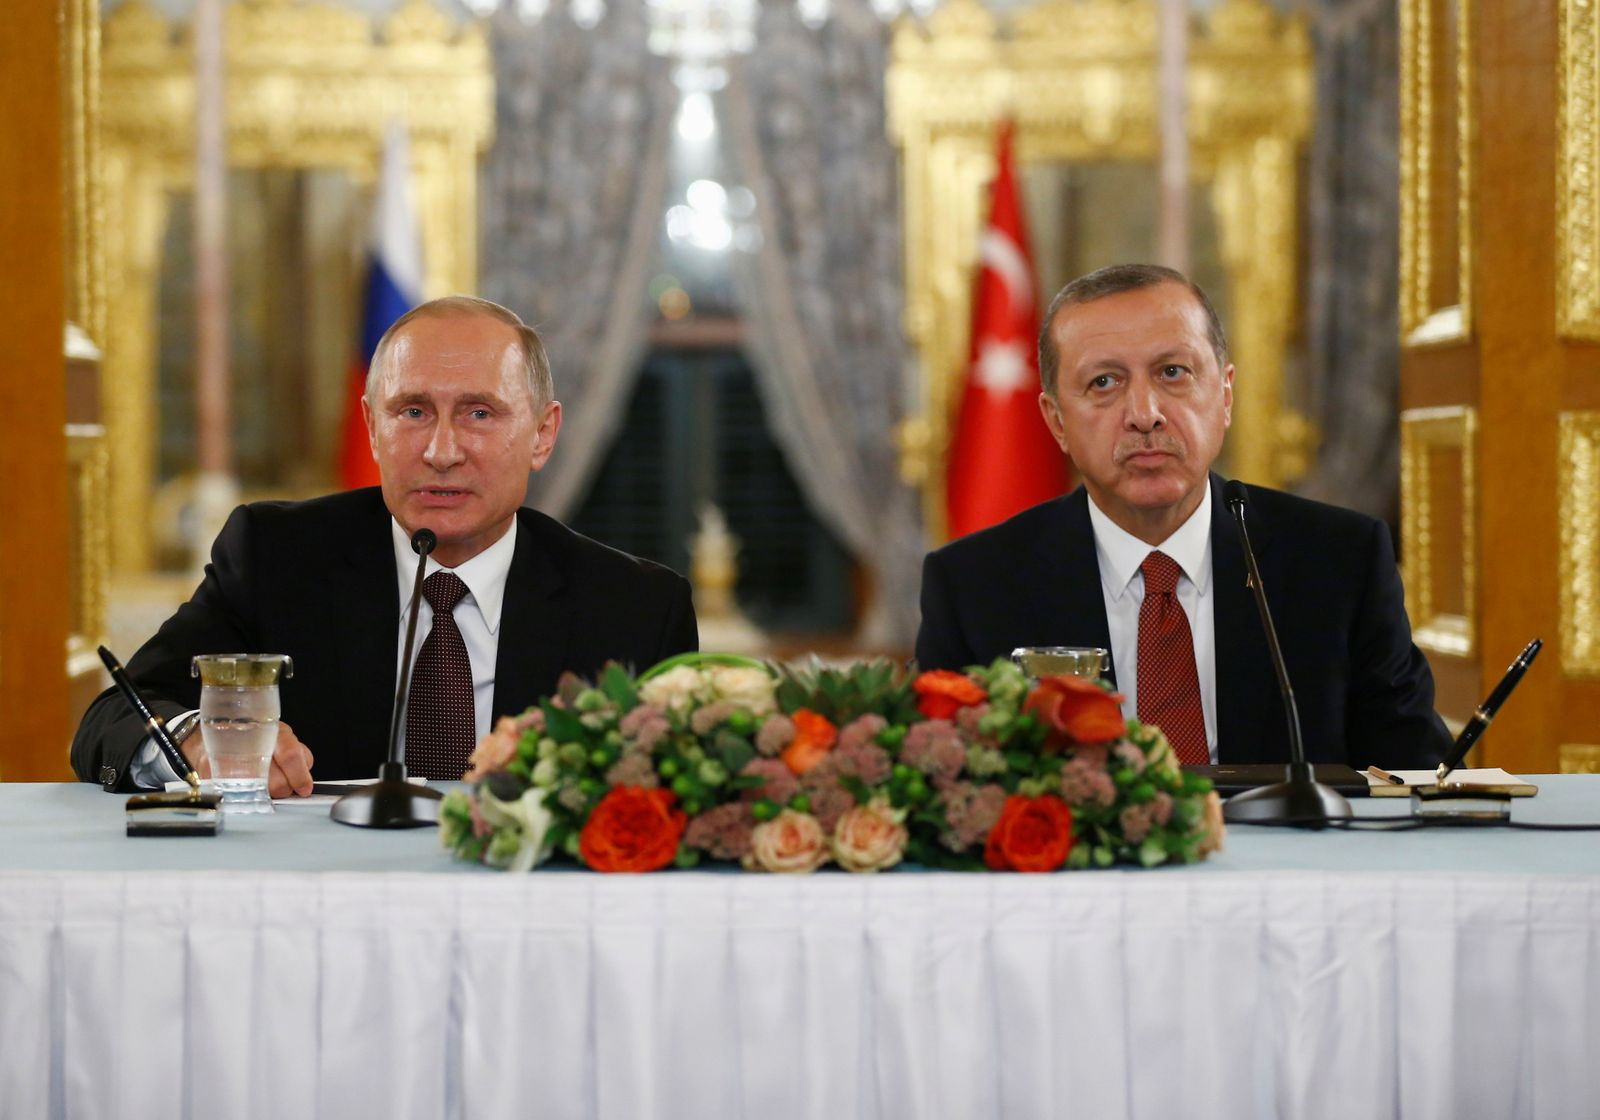 Russian President Putin talks during a joint news conference with his Turkish counterpart Erdogan following their meeting in Istanbul